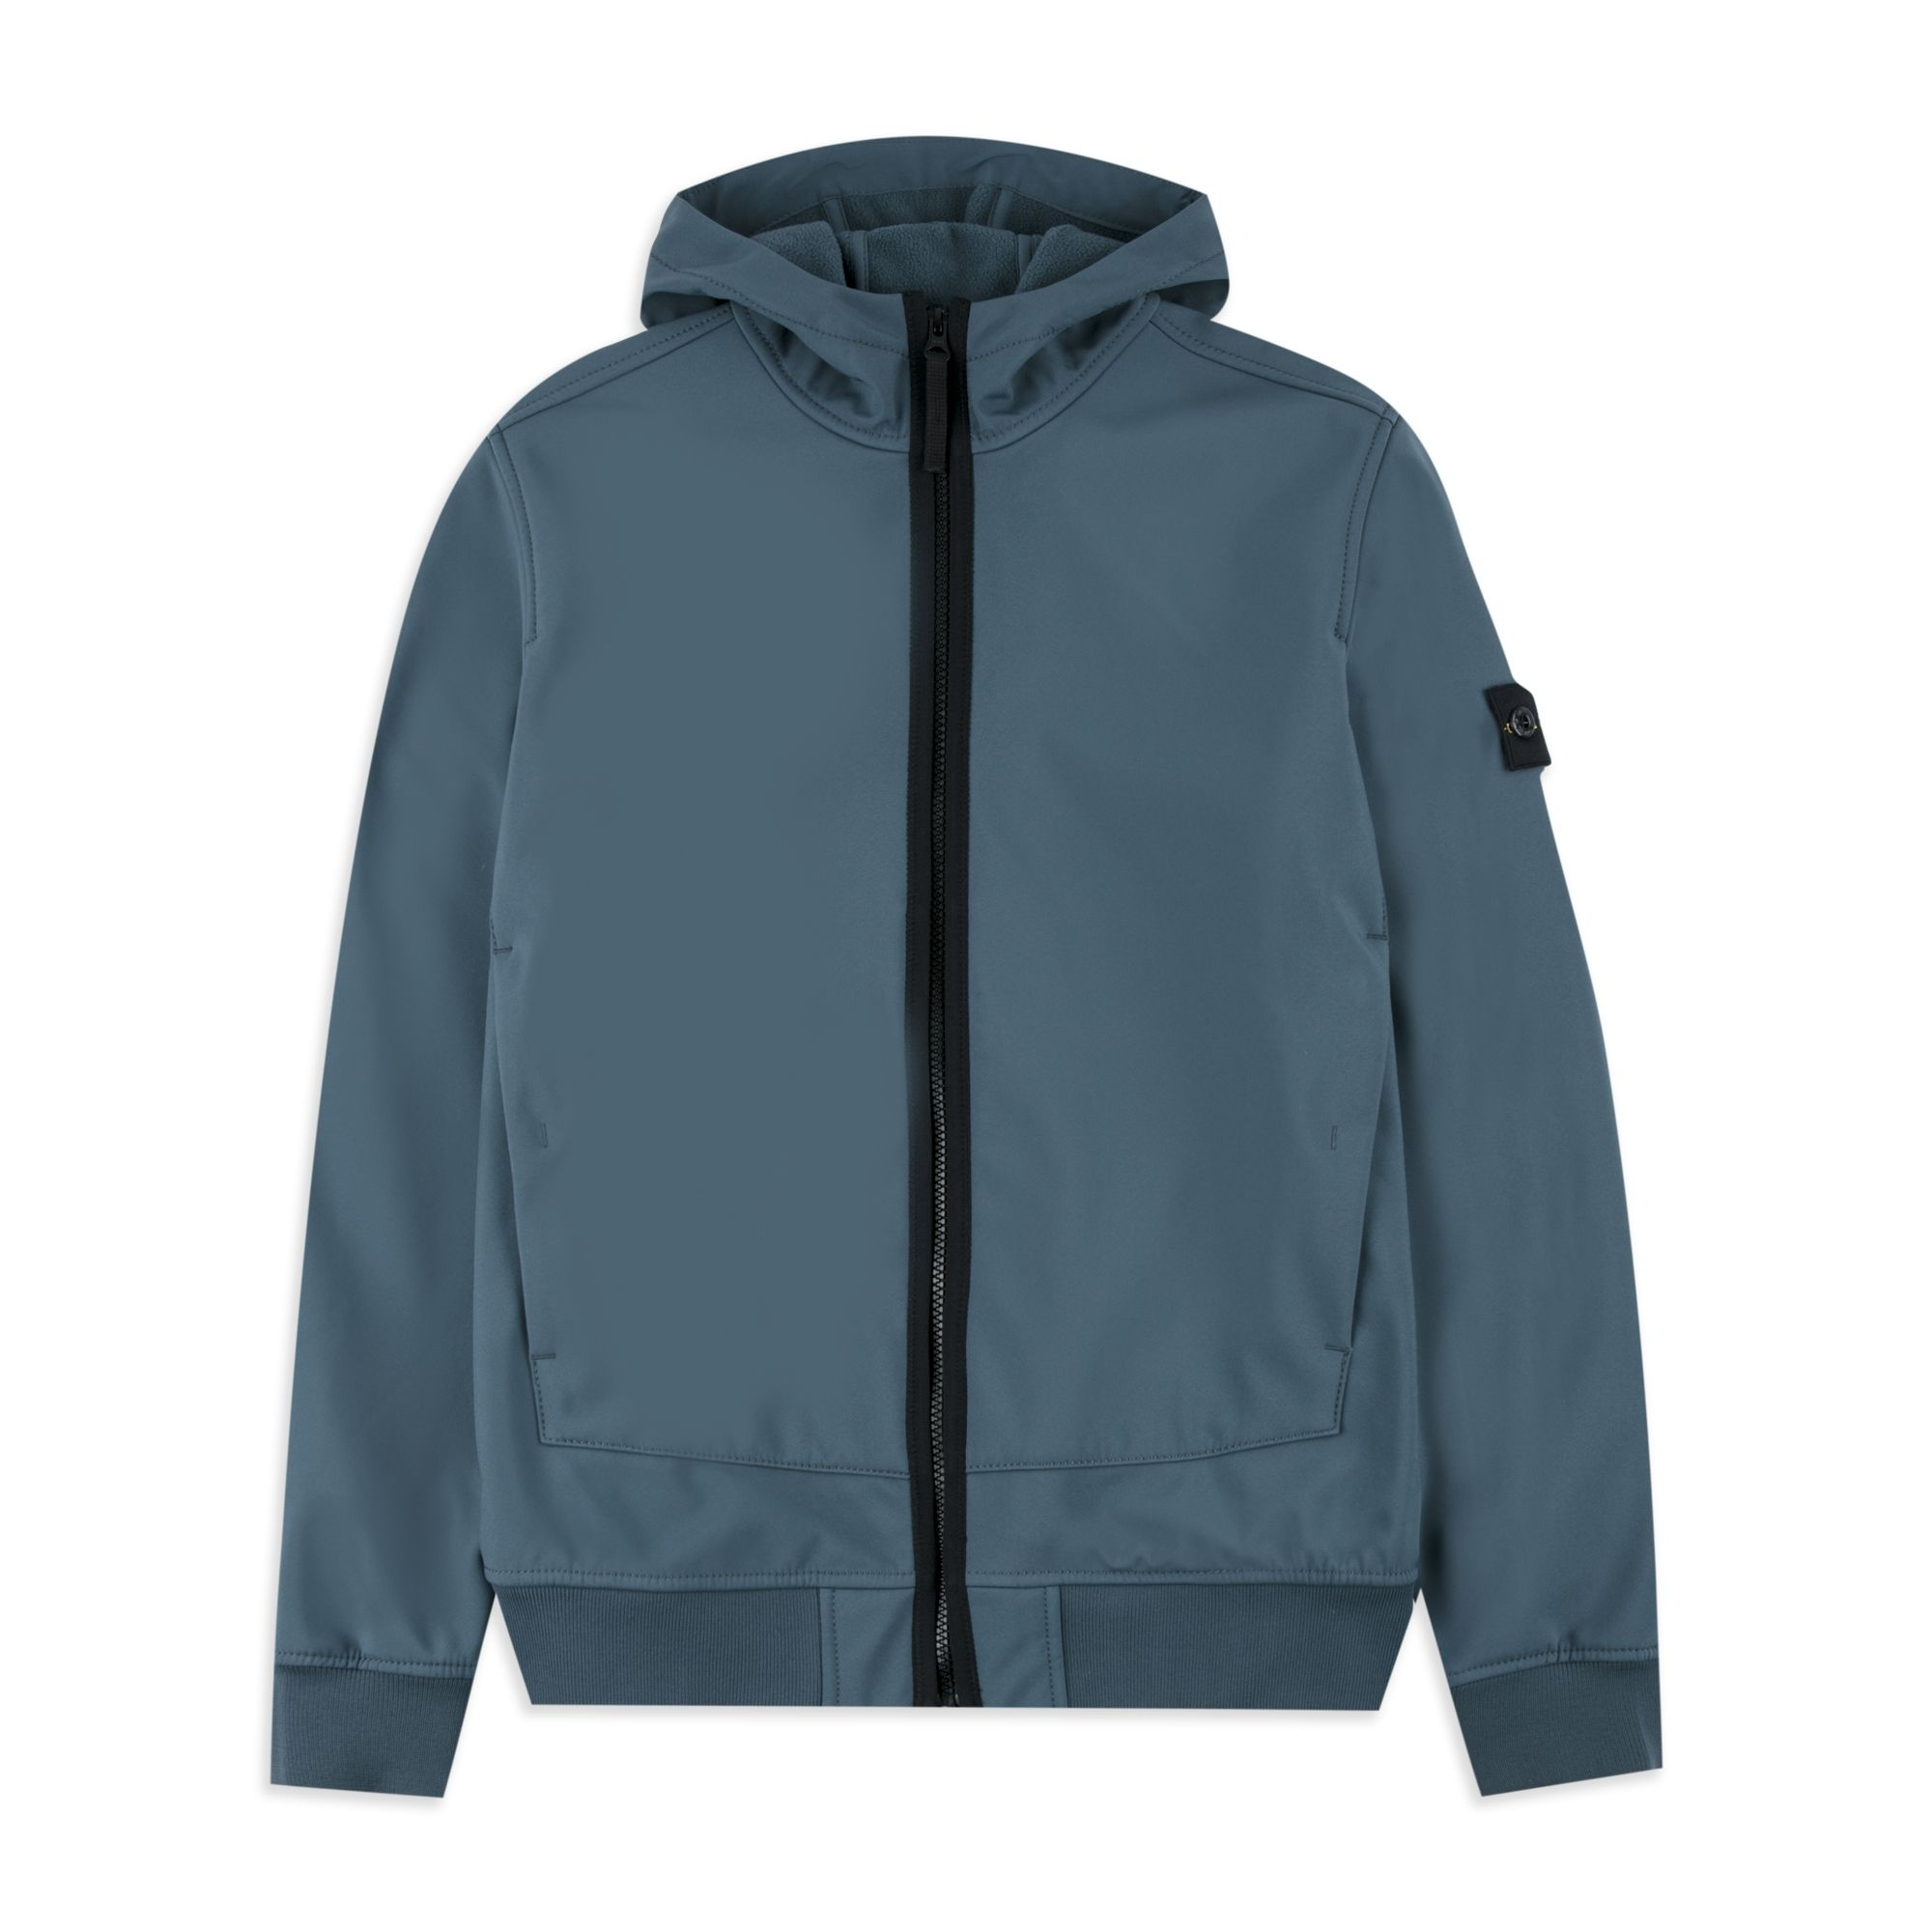 Stone Island Army Green Softshell Jacket Outfit Online